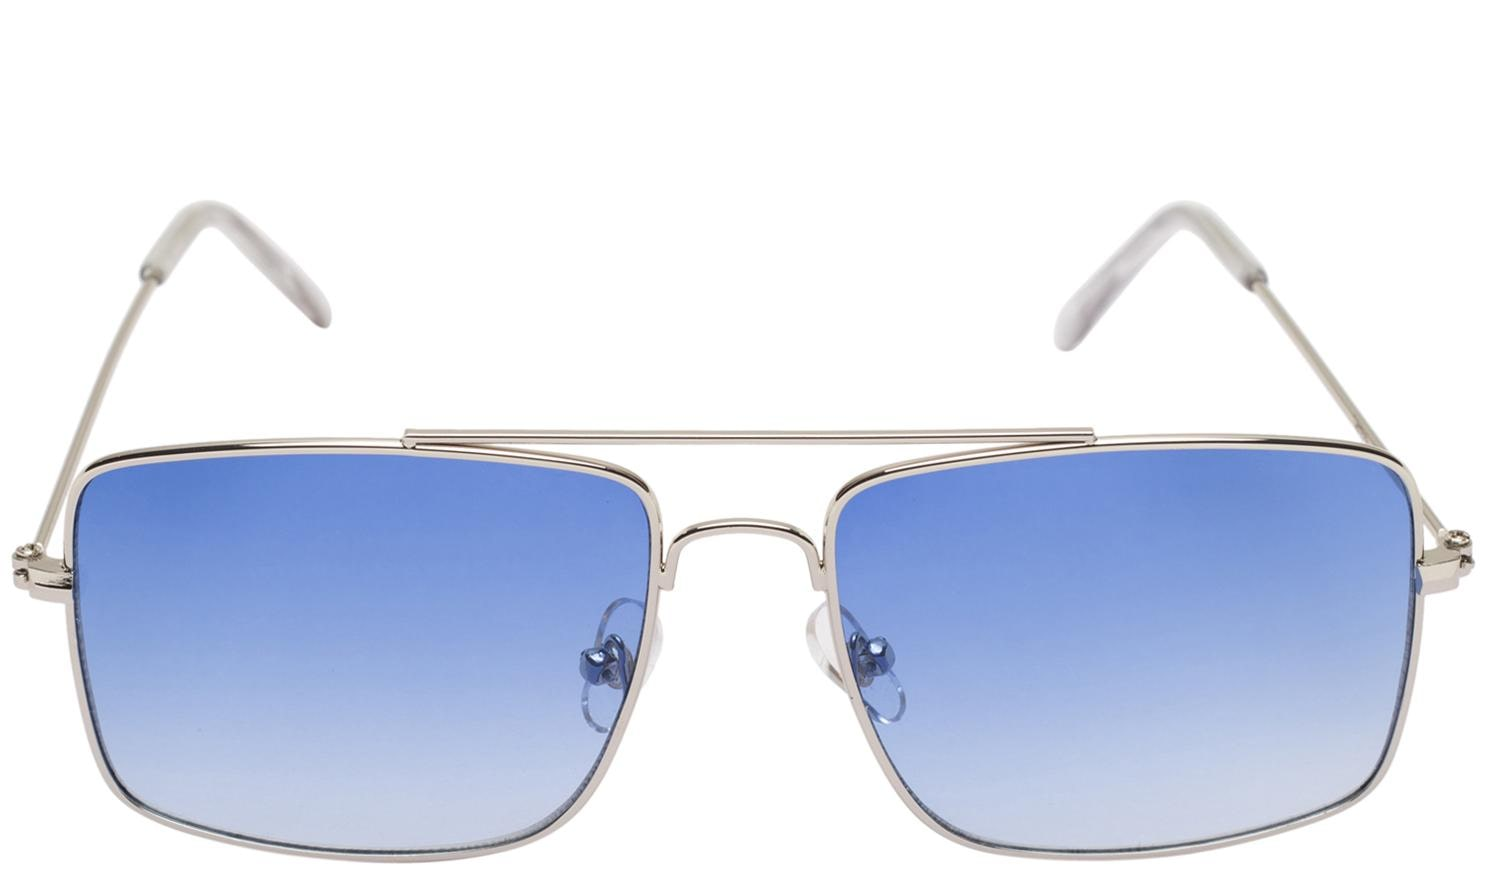 2ea0068d04 Buy Alee Men Silver Frame Sunglass Online at Low Prices in India -  Paytmmall.com